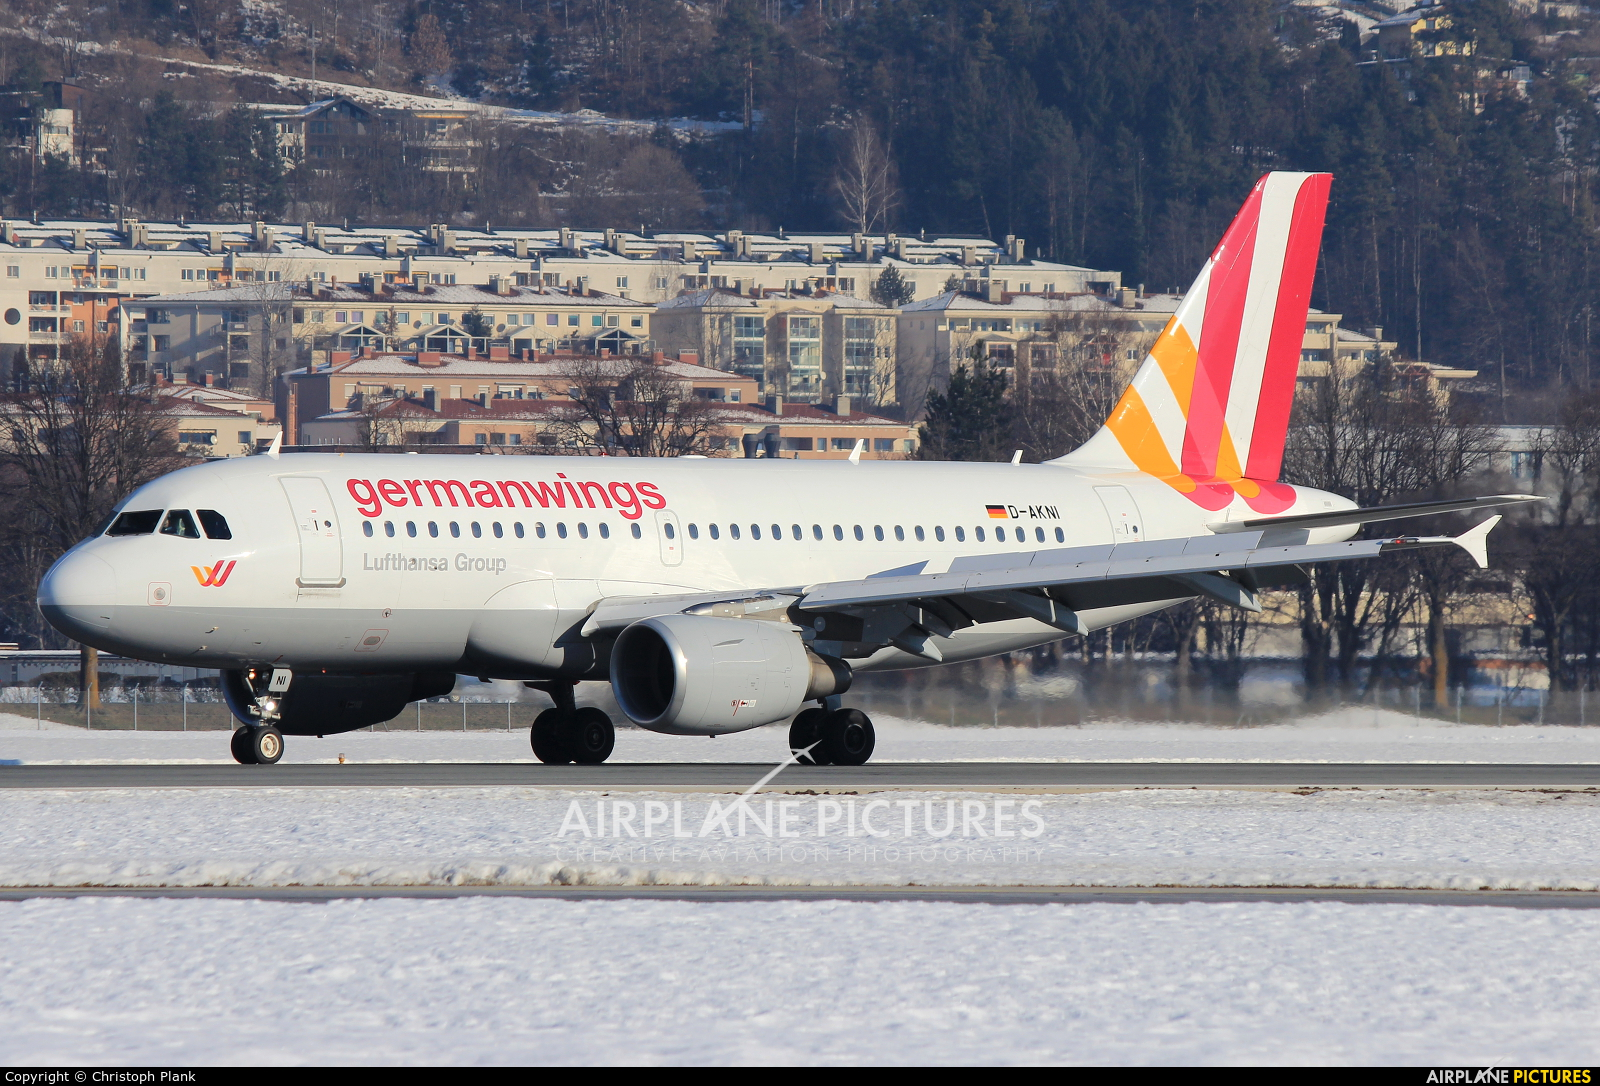 Germanwings D-AKNI aircraft at Innsbruck